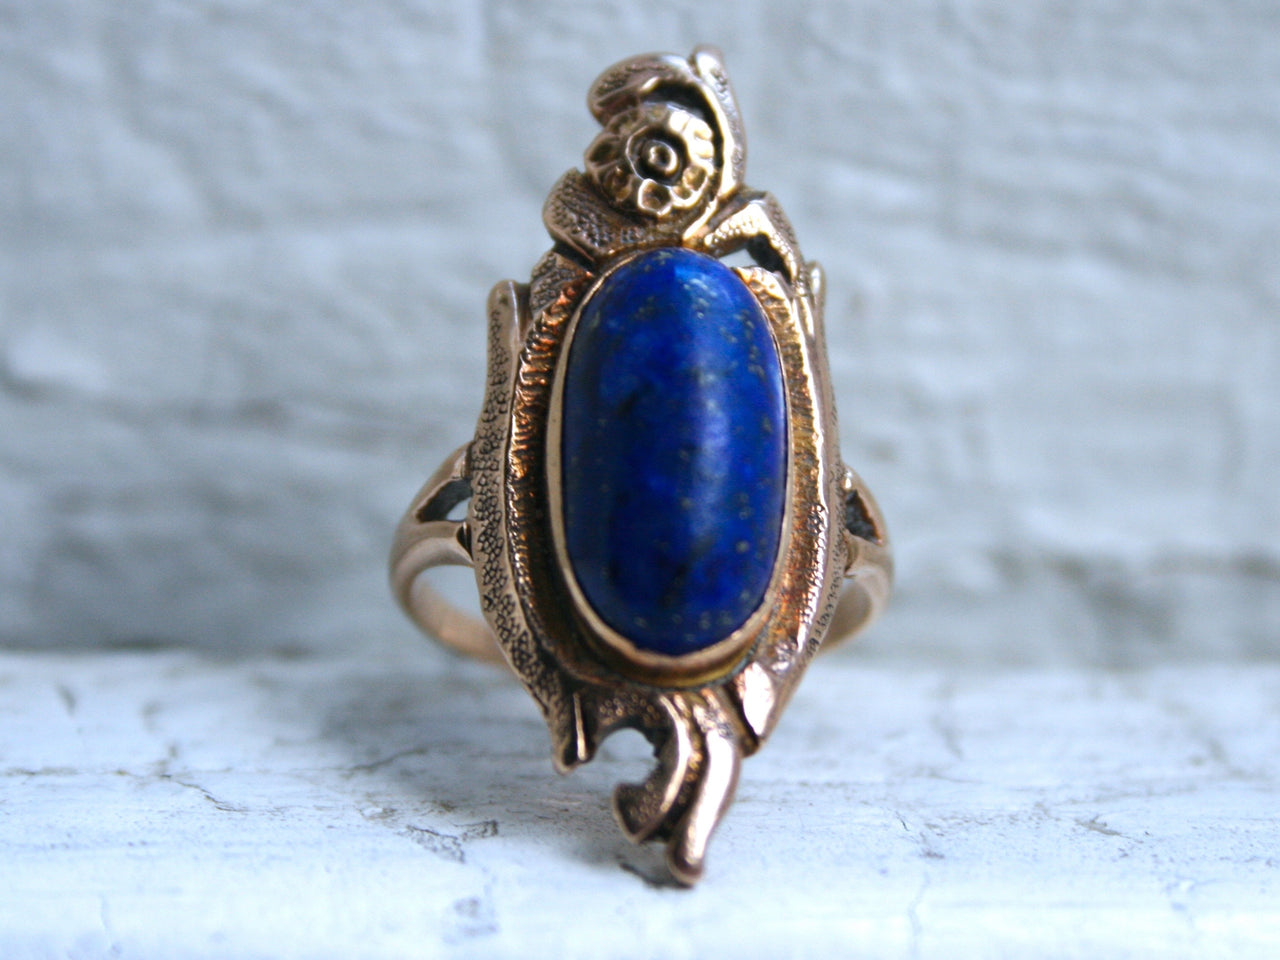 Vintage Retro 14K Yellow Gold Lapis Ring.